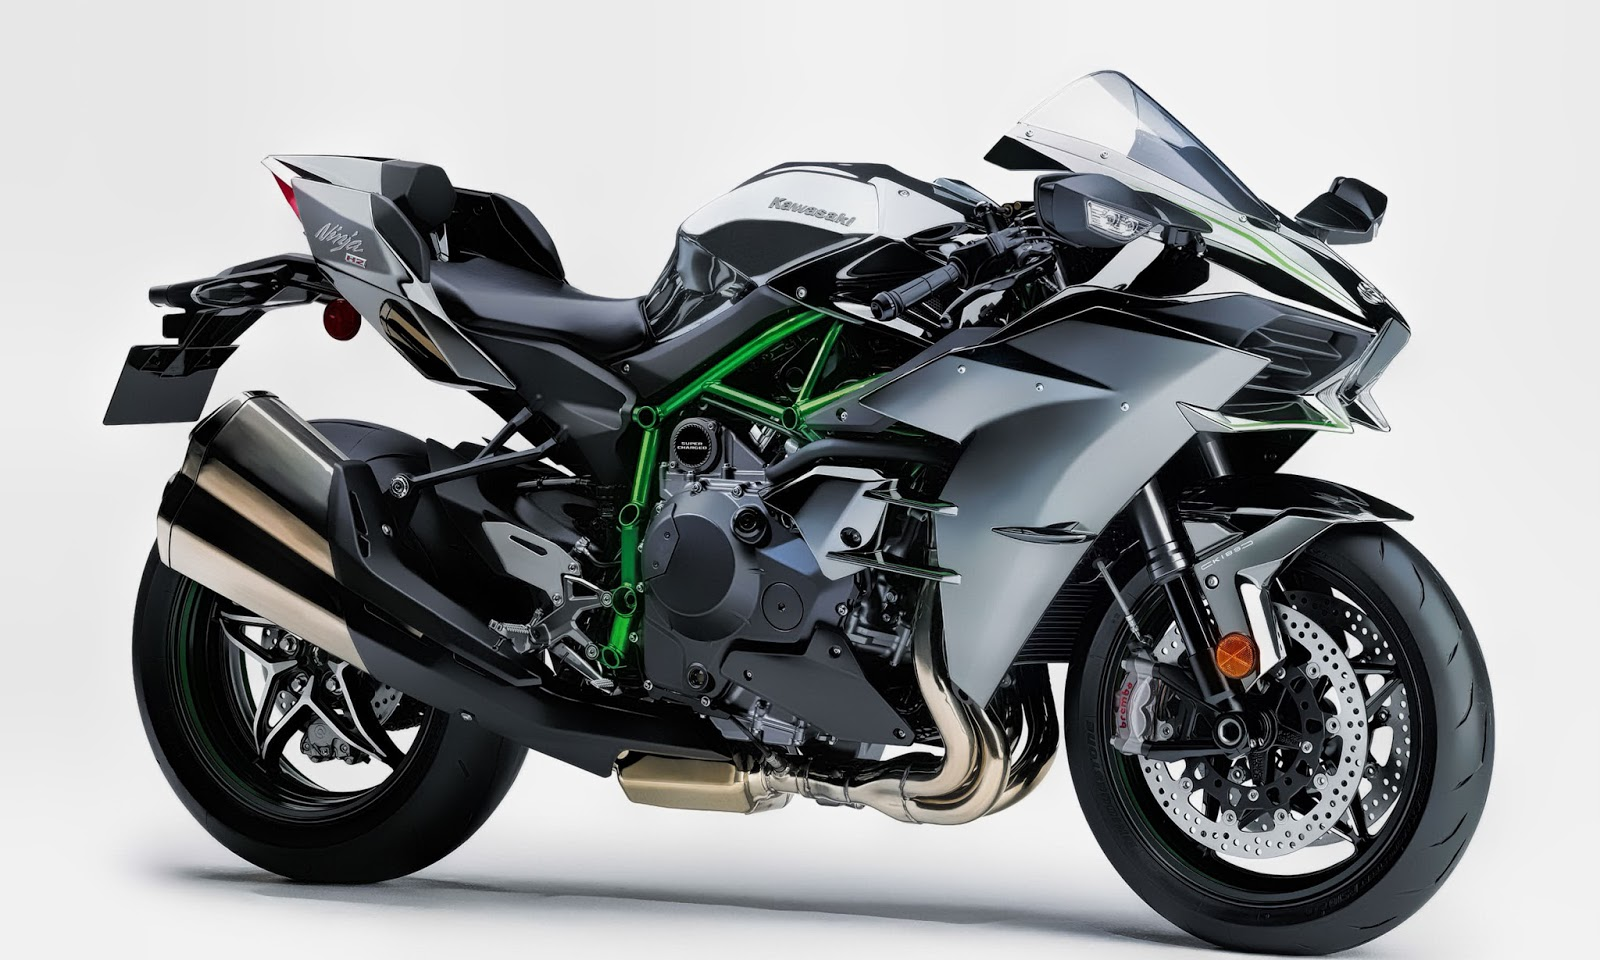 kawasaki ninja h2r hd wallpapers hd wallpapers high definition free background. Black Bedroom Furniture Sets. Home Design Ideas